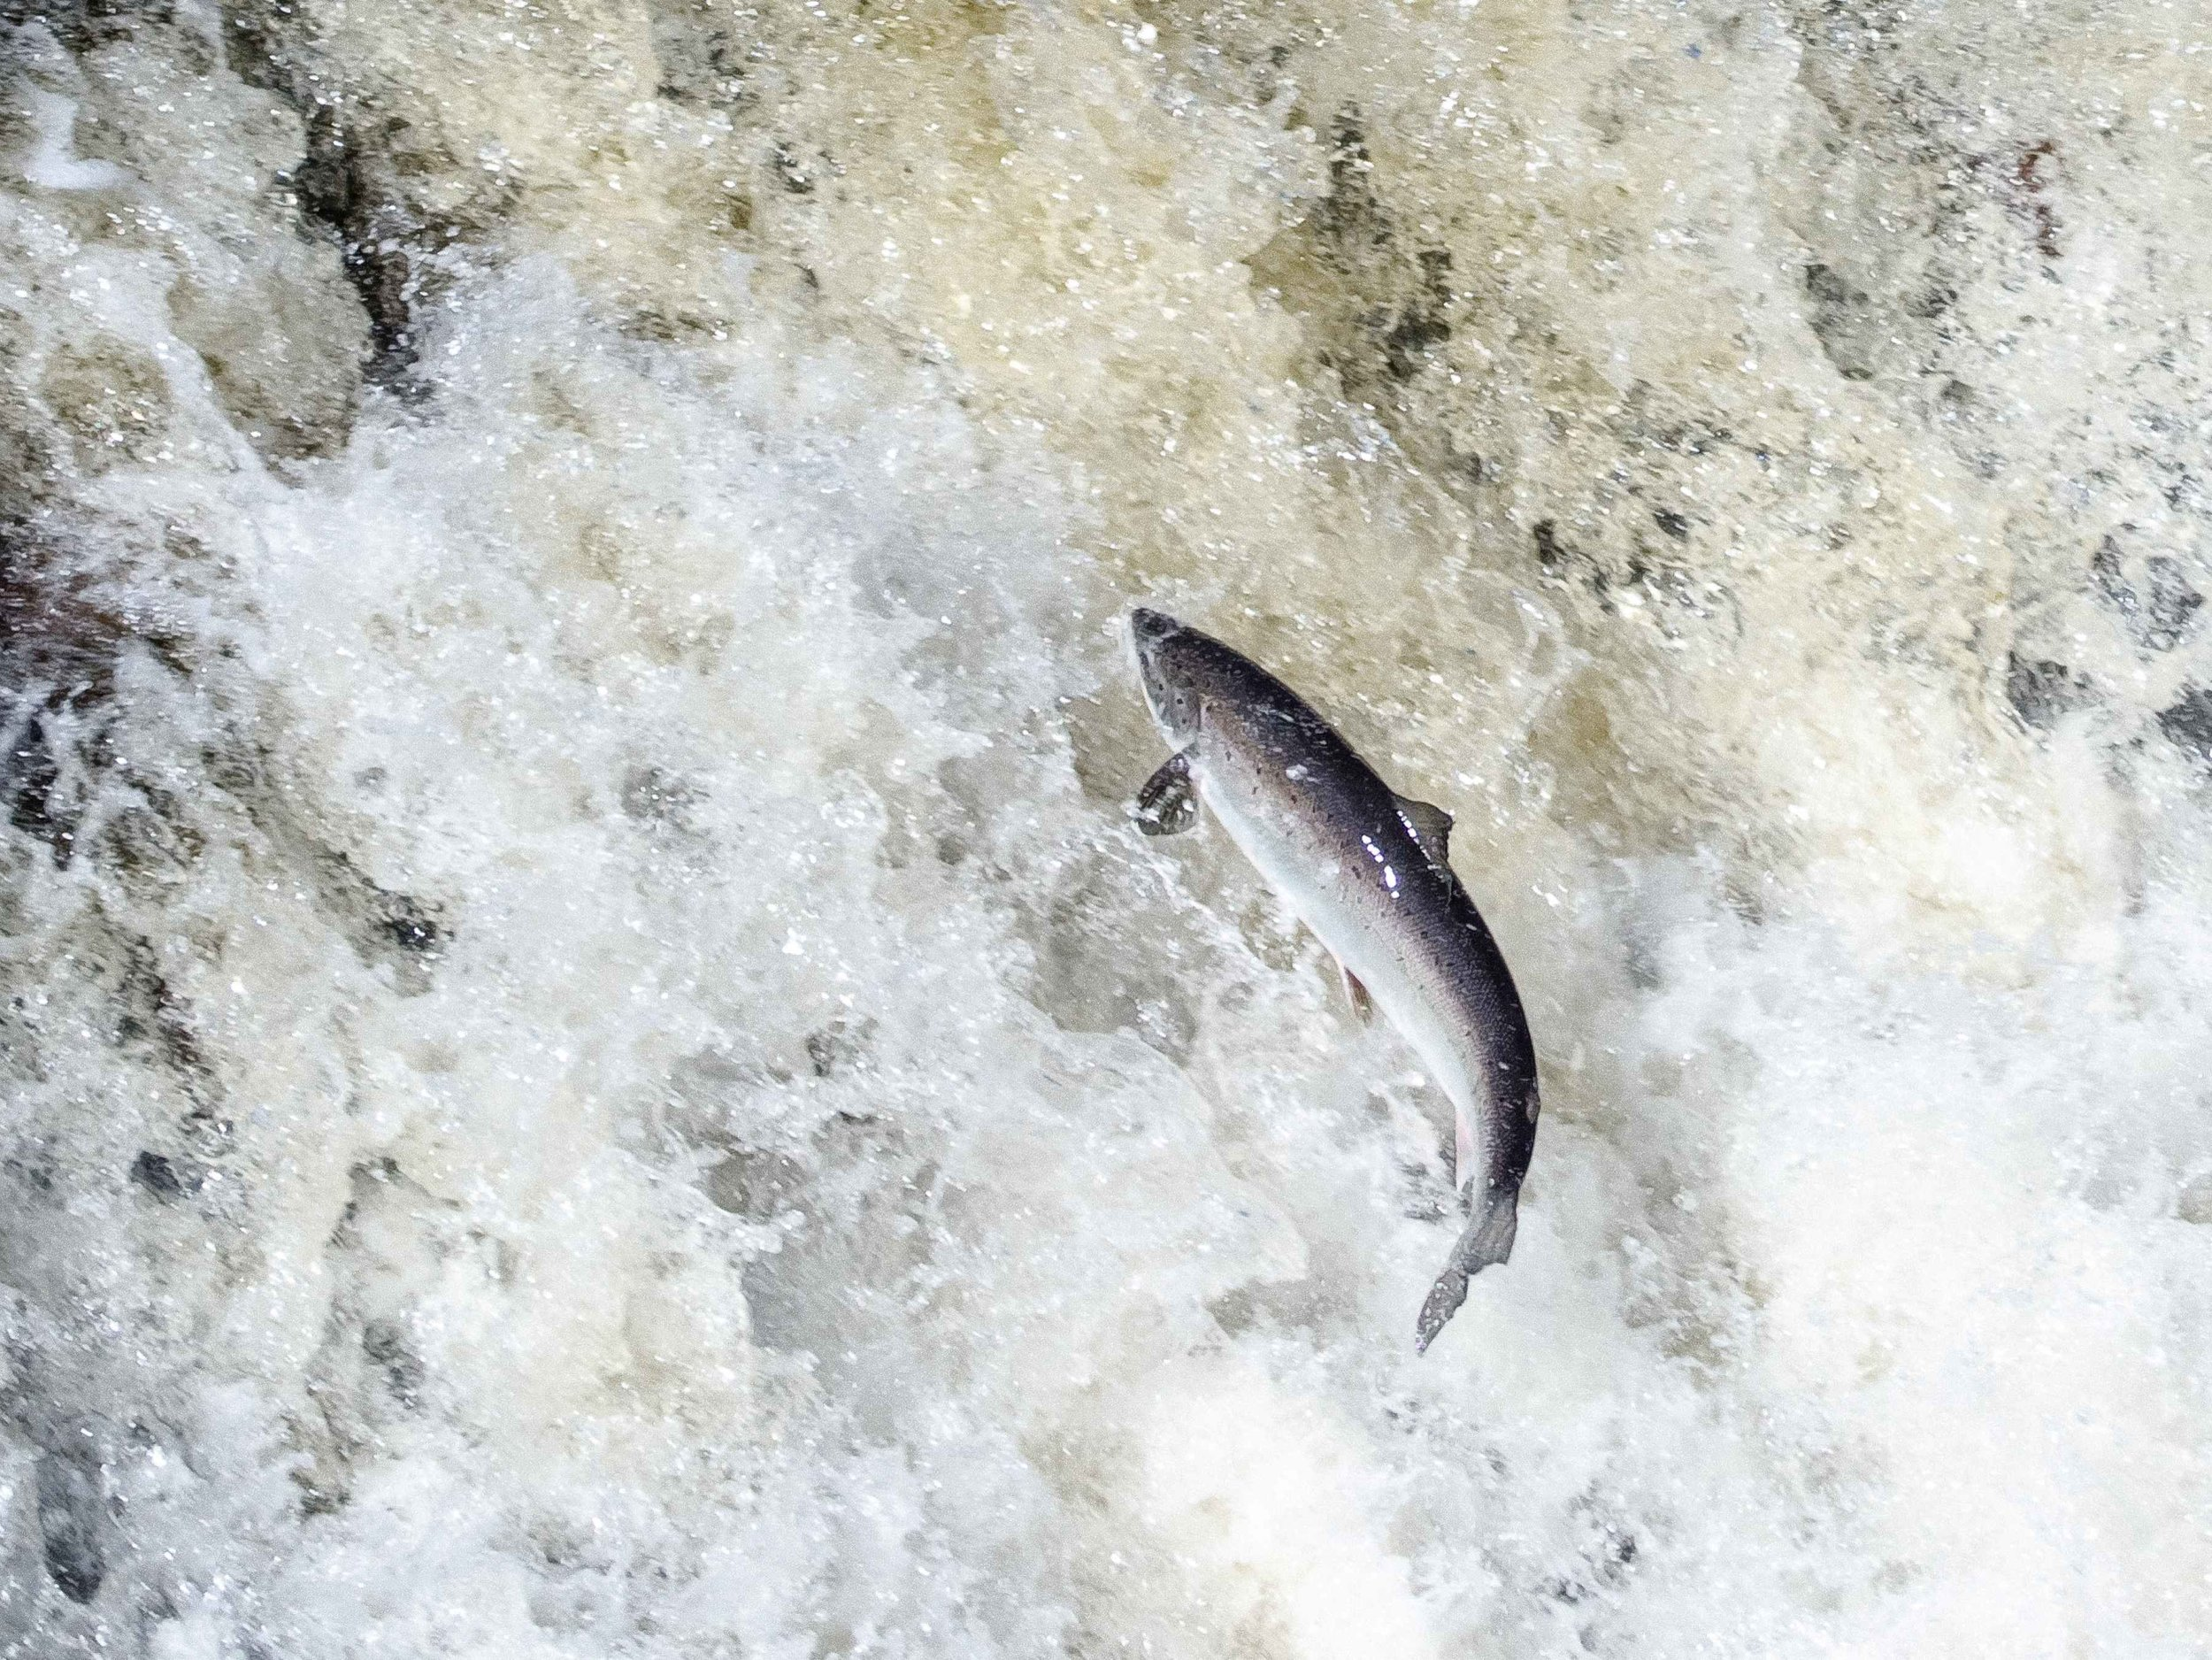 Leaping_Salmon_Big_East_River-2.jpg